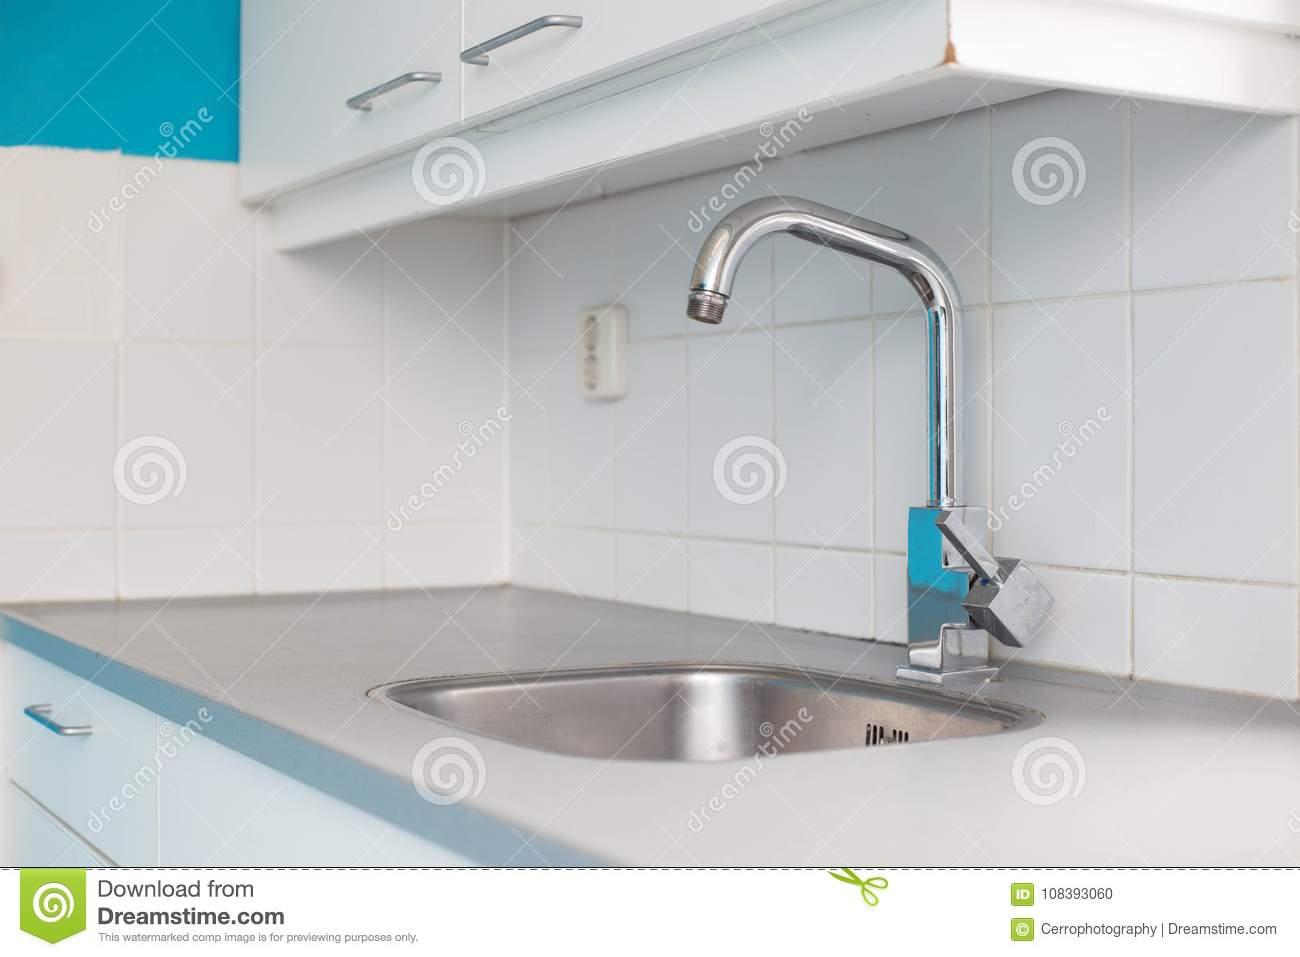 Empty Kitchen Sink Old Design Stock Photo - Image of basin, metal ...